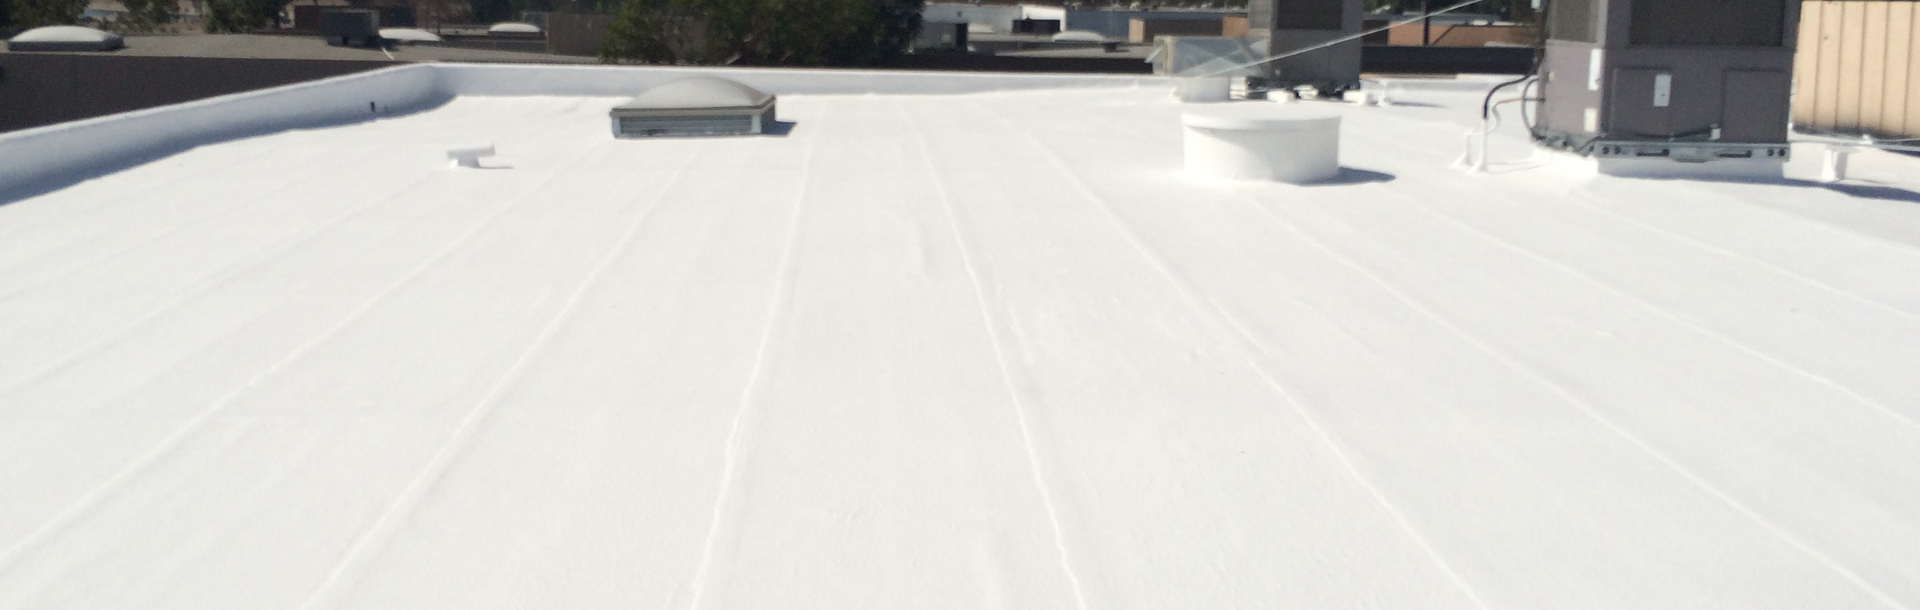 Roof Waterproofing & Insulating Coatings